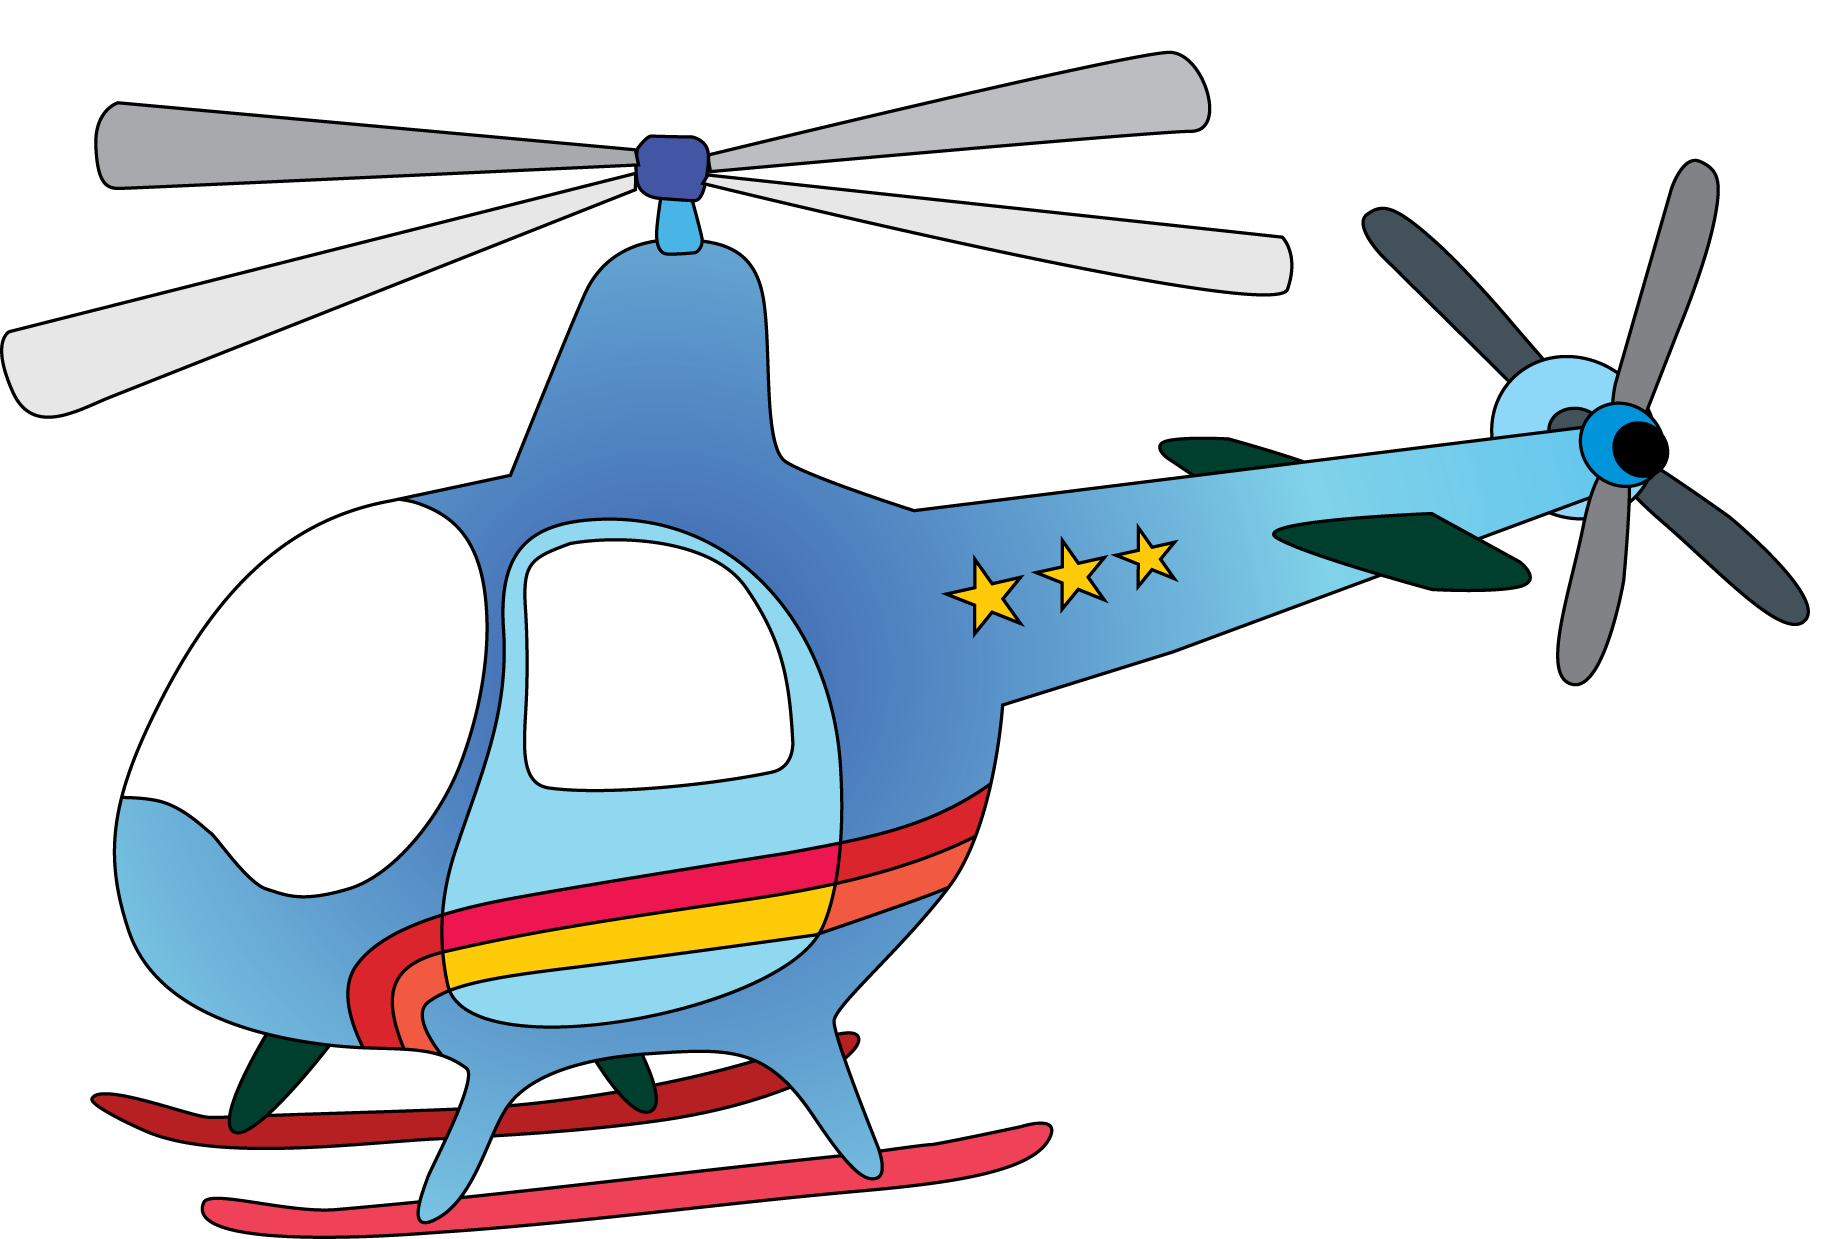 Helicopter clipart. Panda free images info